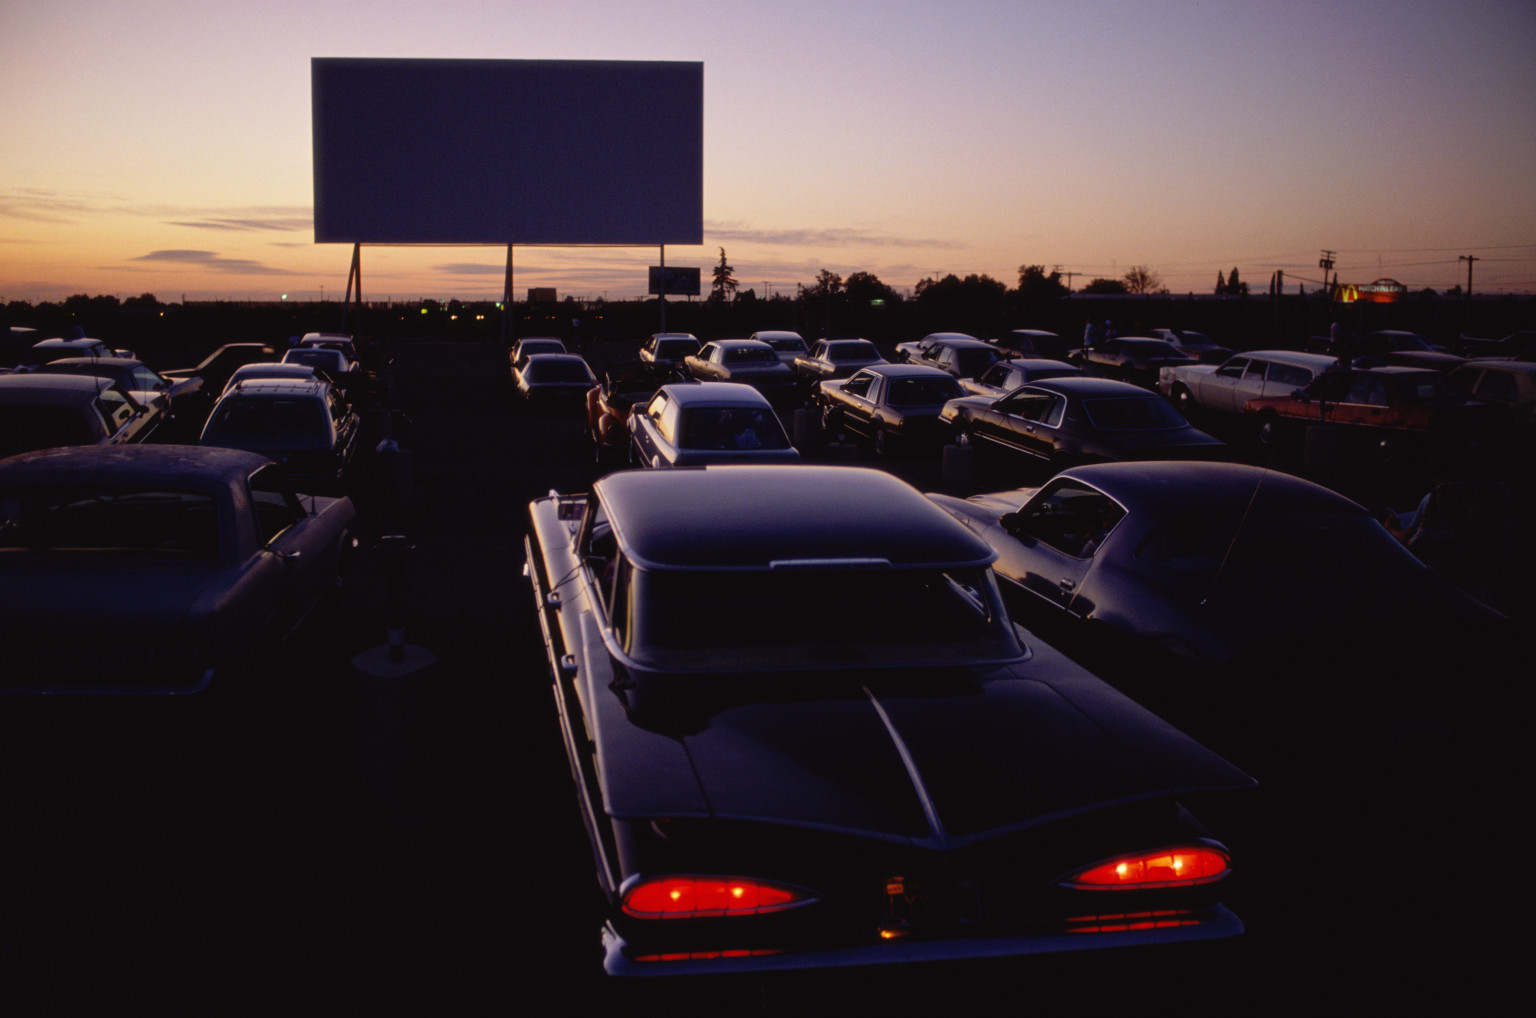 sex at the drive in movie jpg 1080x810